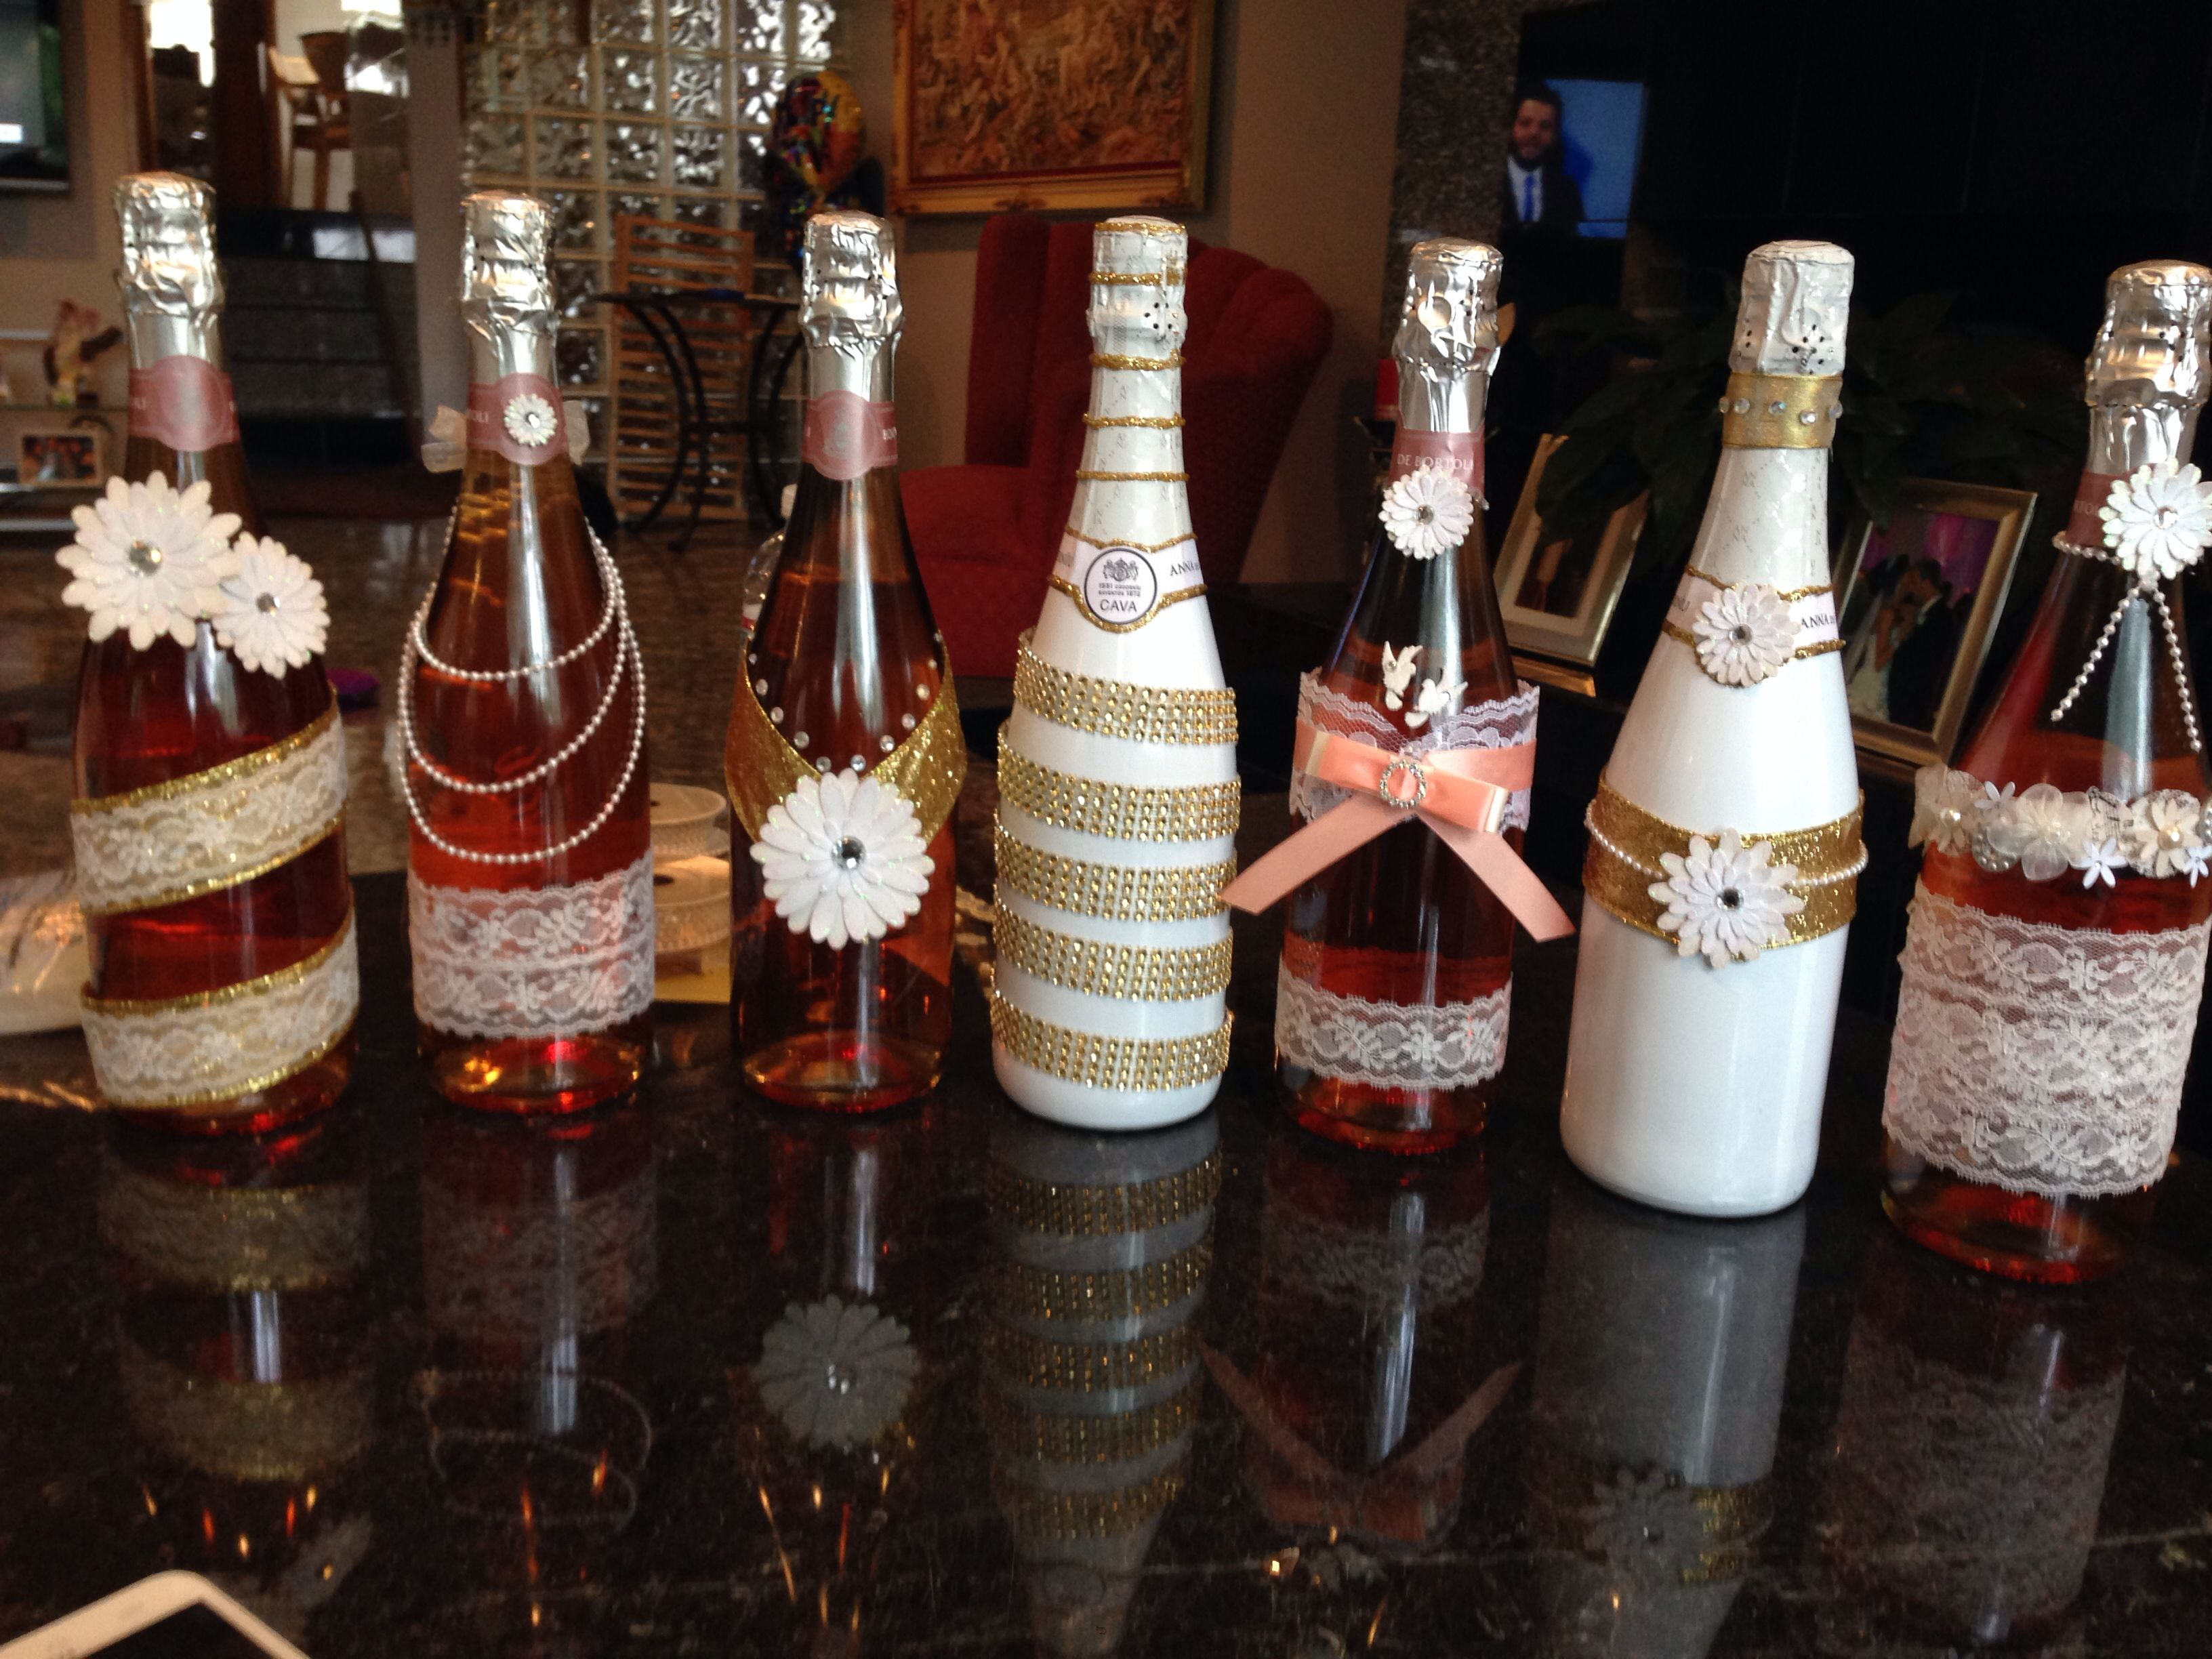 Decorative Wine Bottles  Made These For My Cousins Bridal Shower  Part Of  The Center